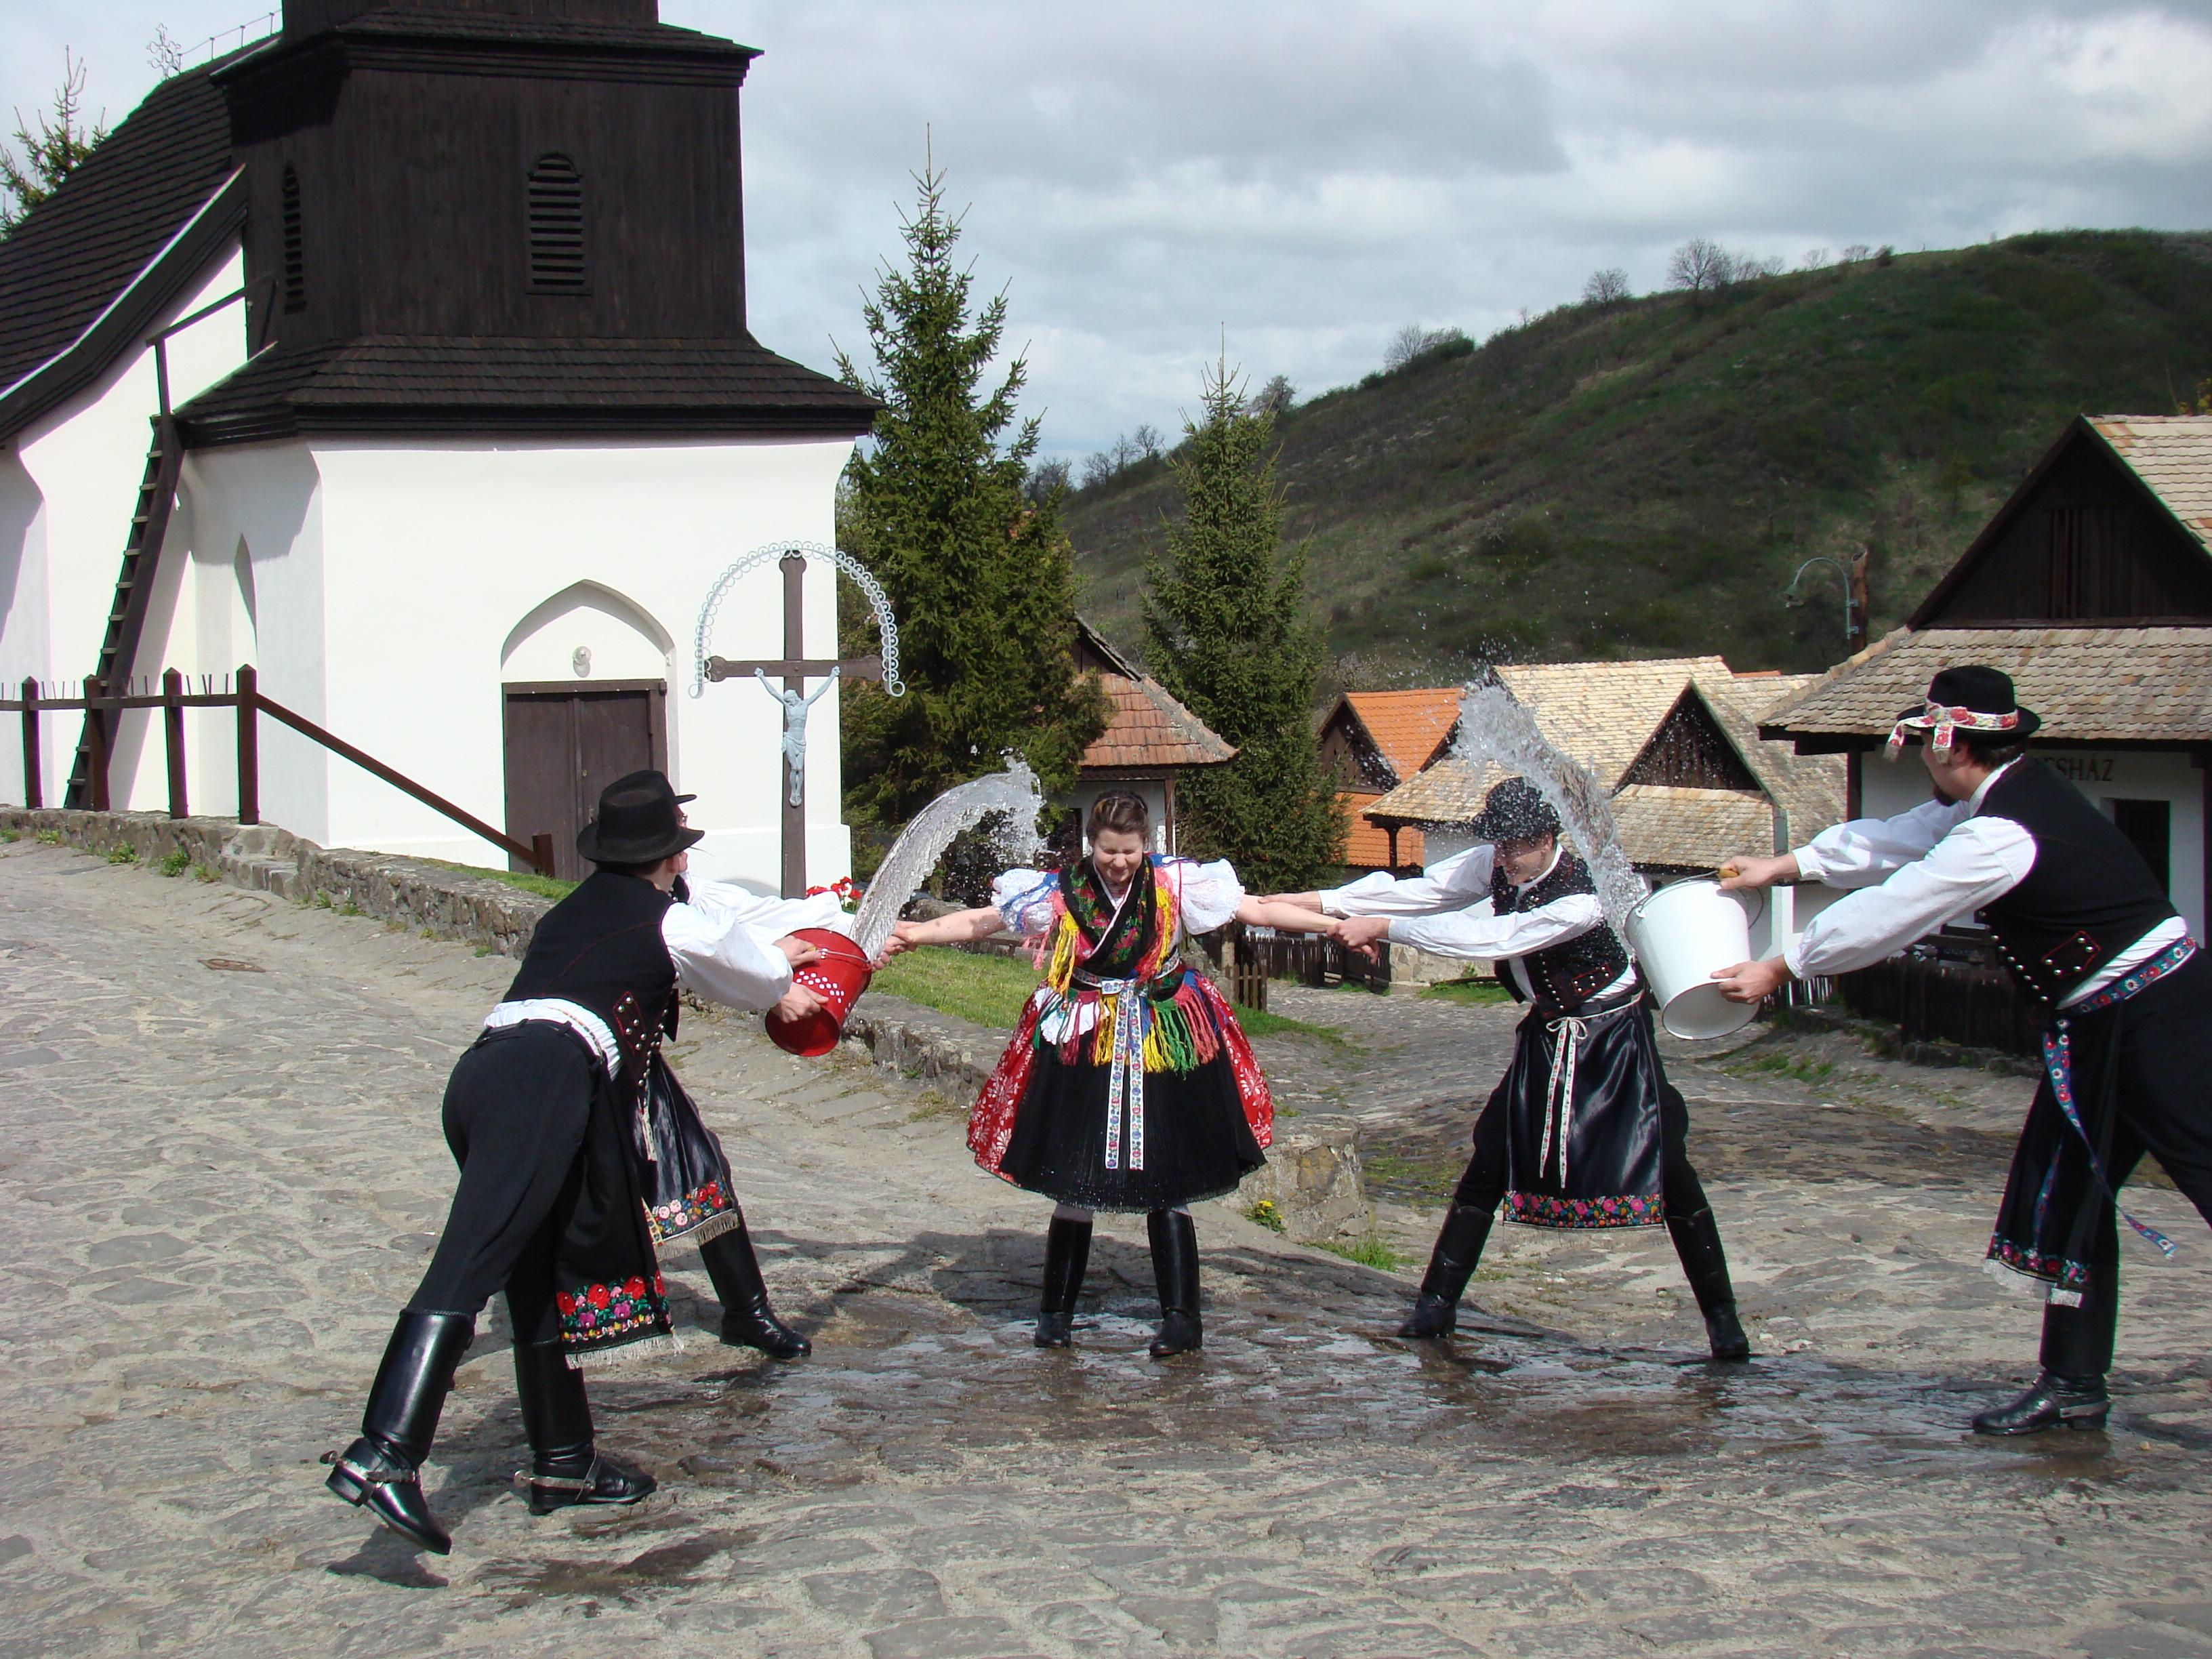 Easter Festival In Hollókő, Hungary, 19 - 21 April